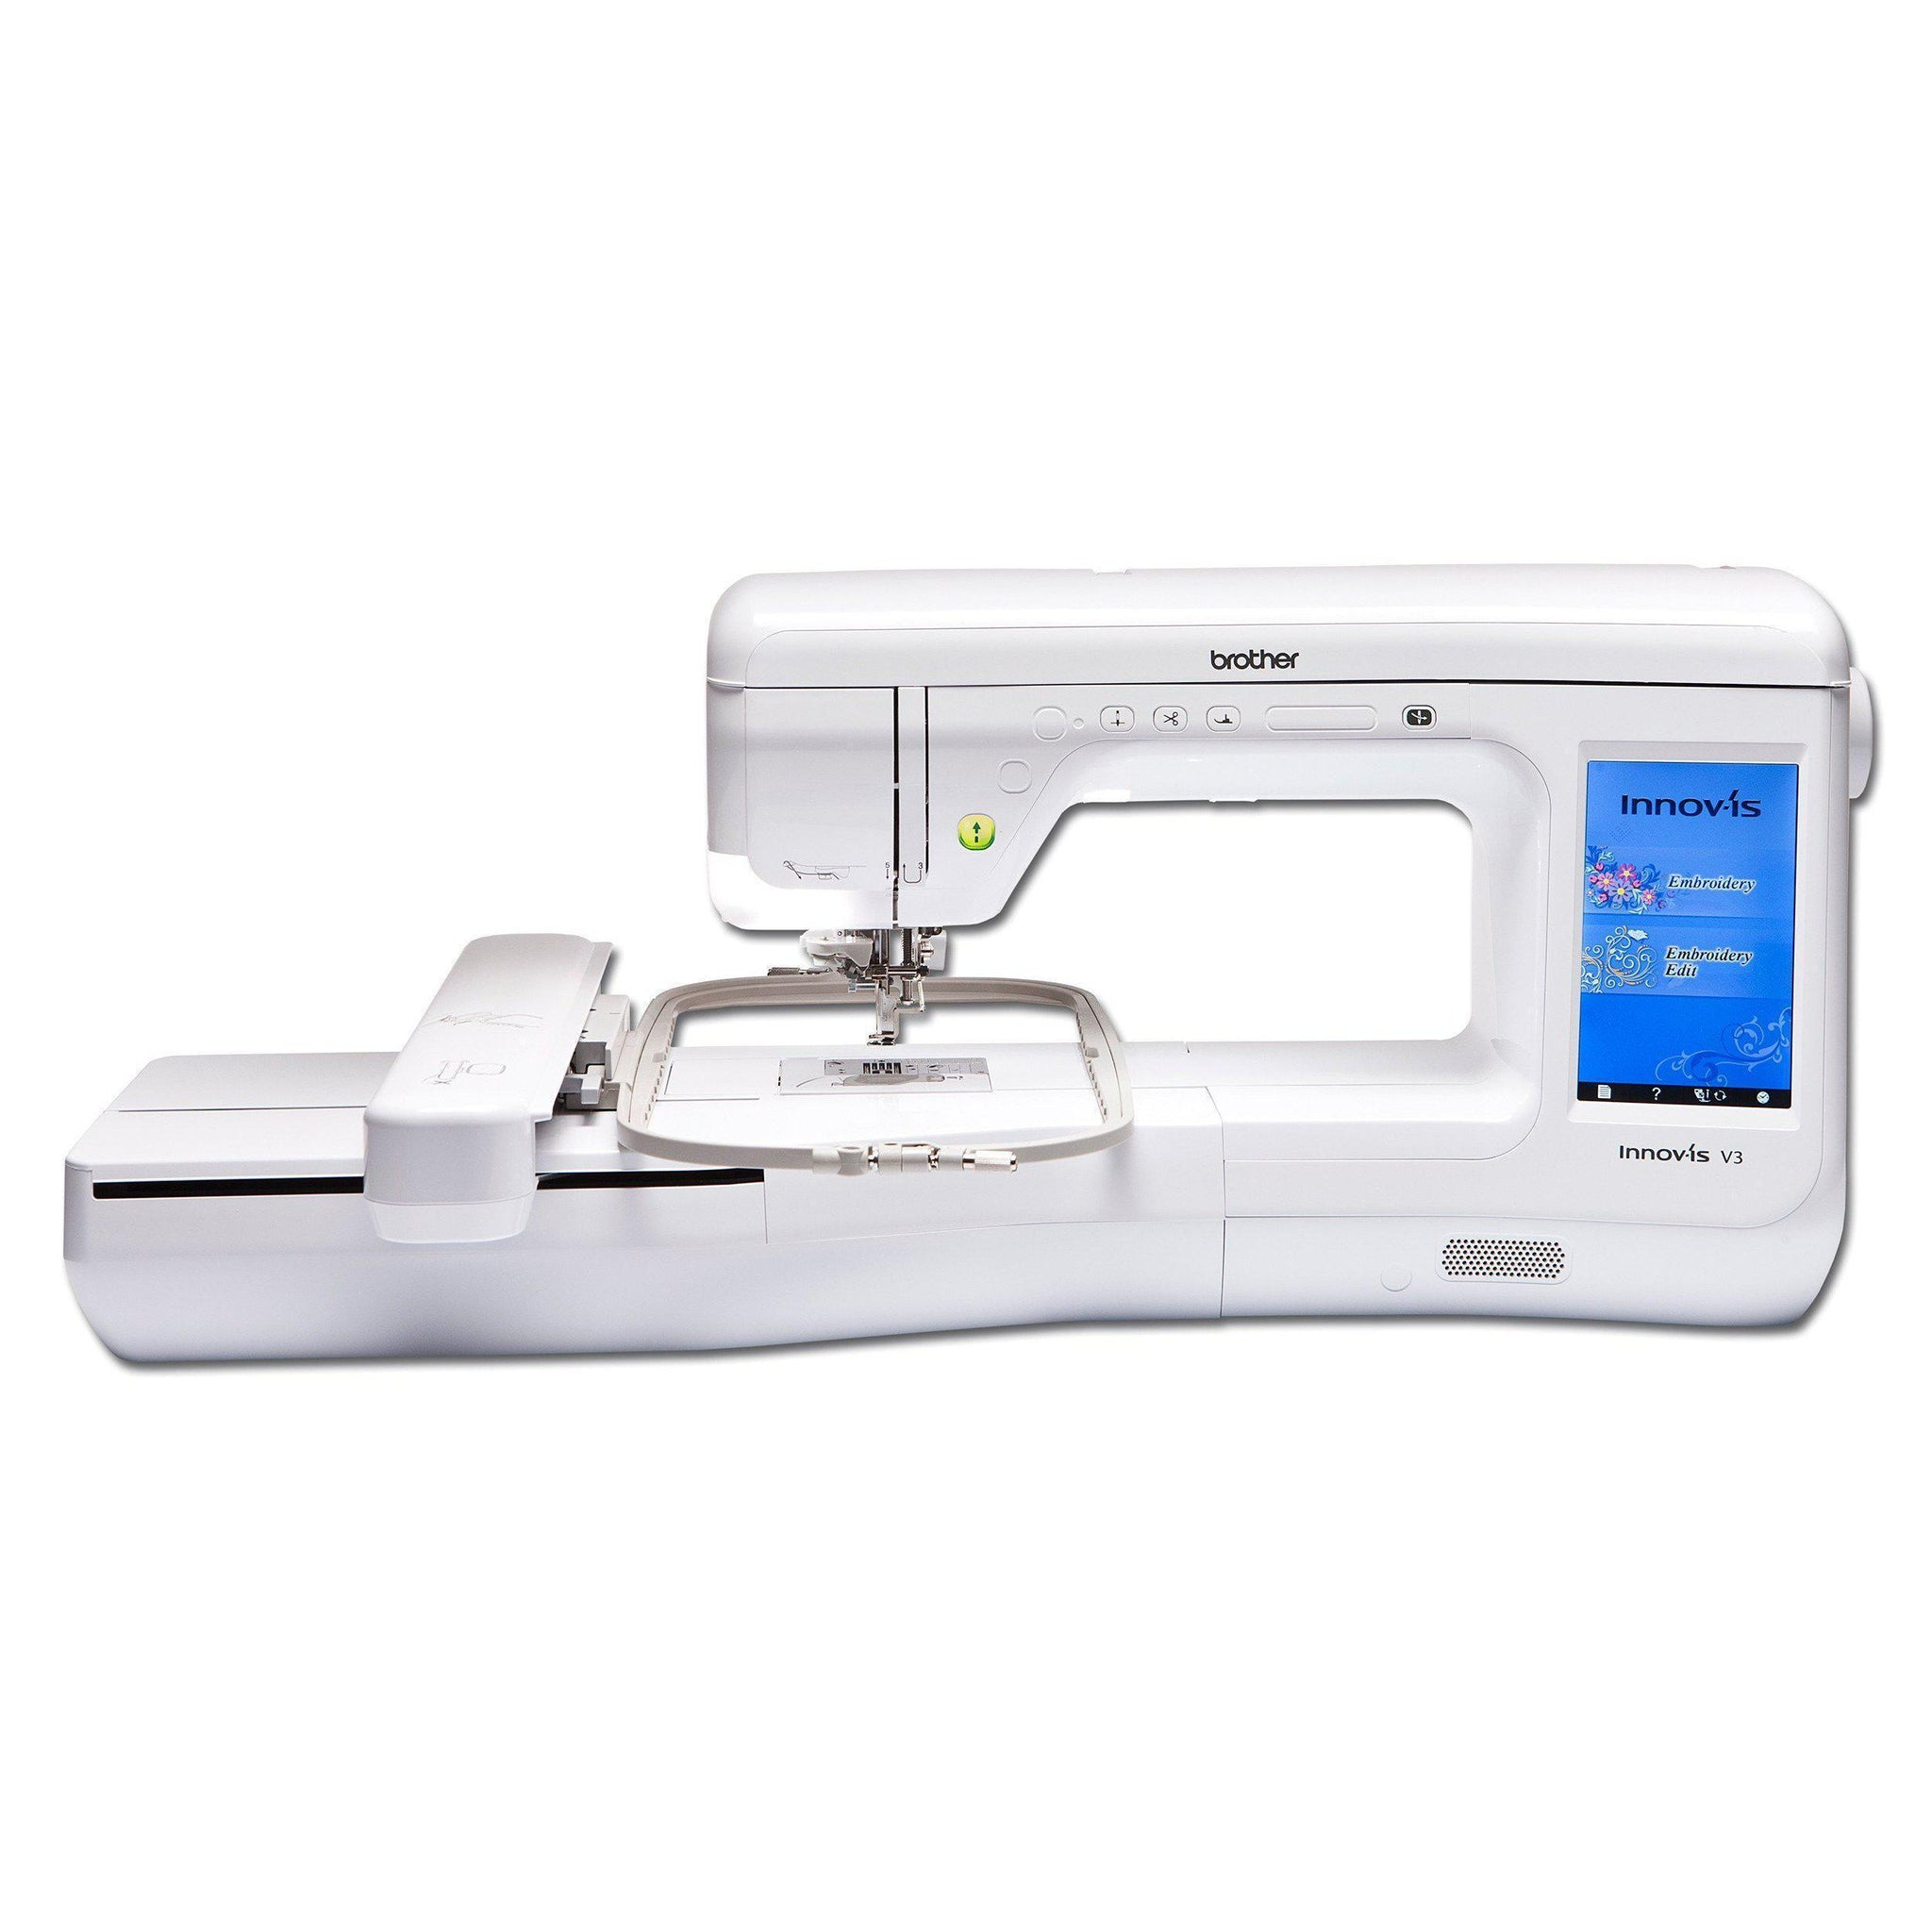 Brother Innovis V3 Embroidery Machine - Free Premium Pack 1 and LED Pointer Embroidery Foot worth £297.98 until July 31st! Brother Embroidery Machines - Fabric Mouse